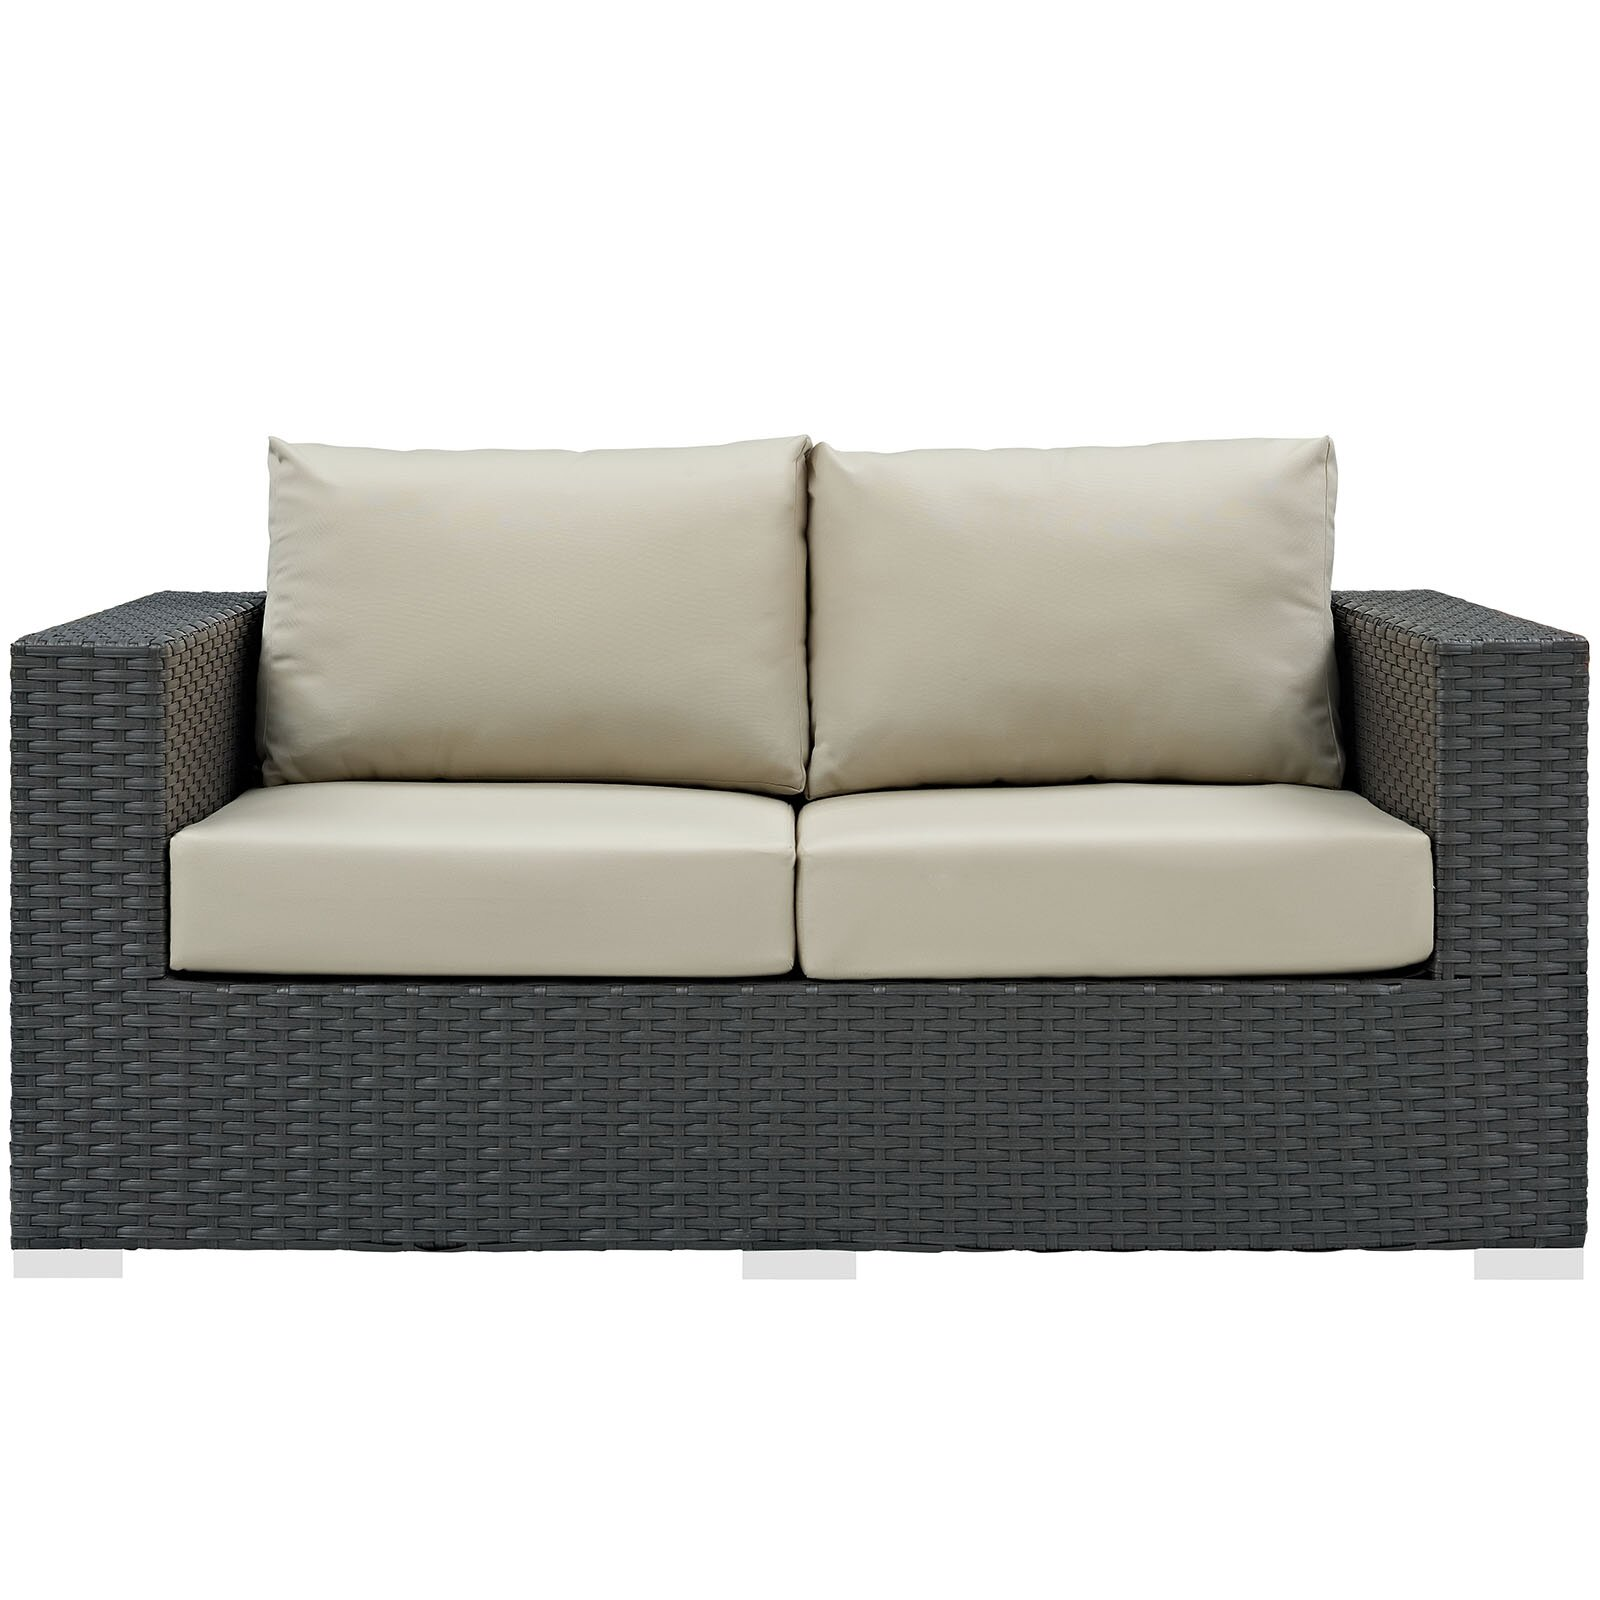 Modway Sojourn Loveseat With Cushions Wayfair